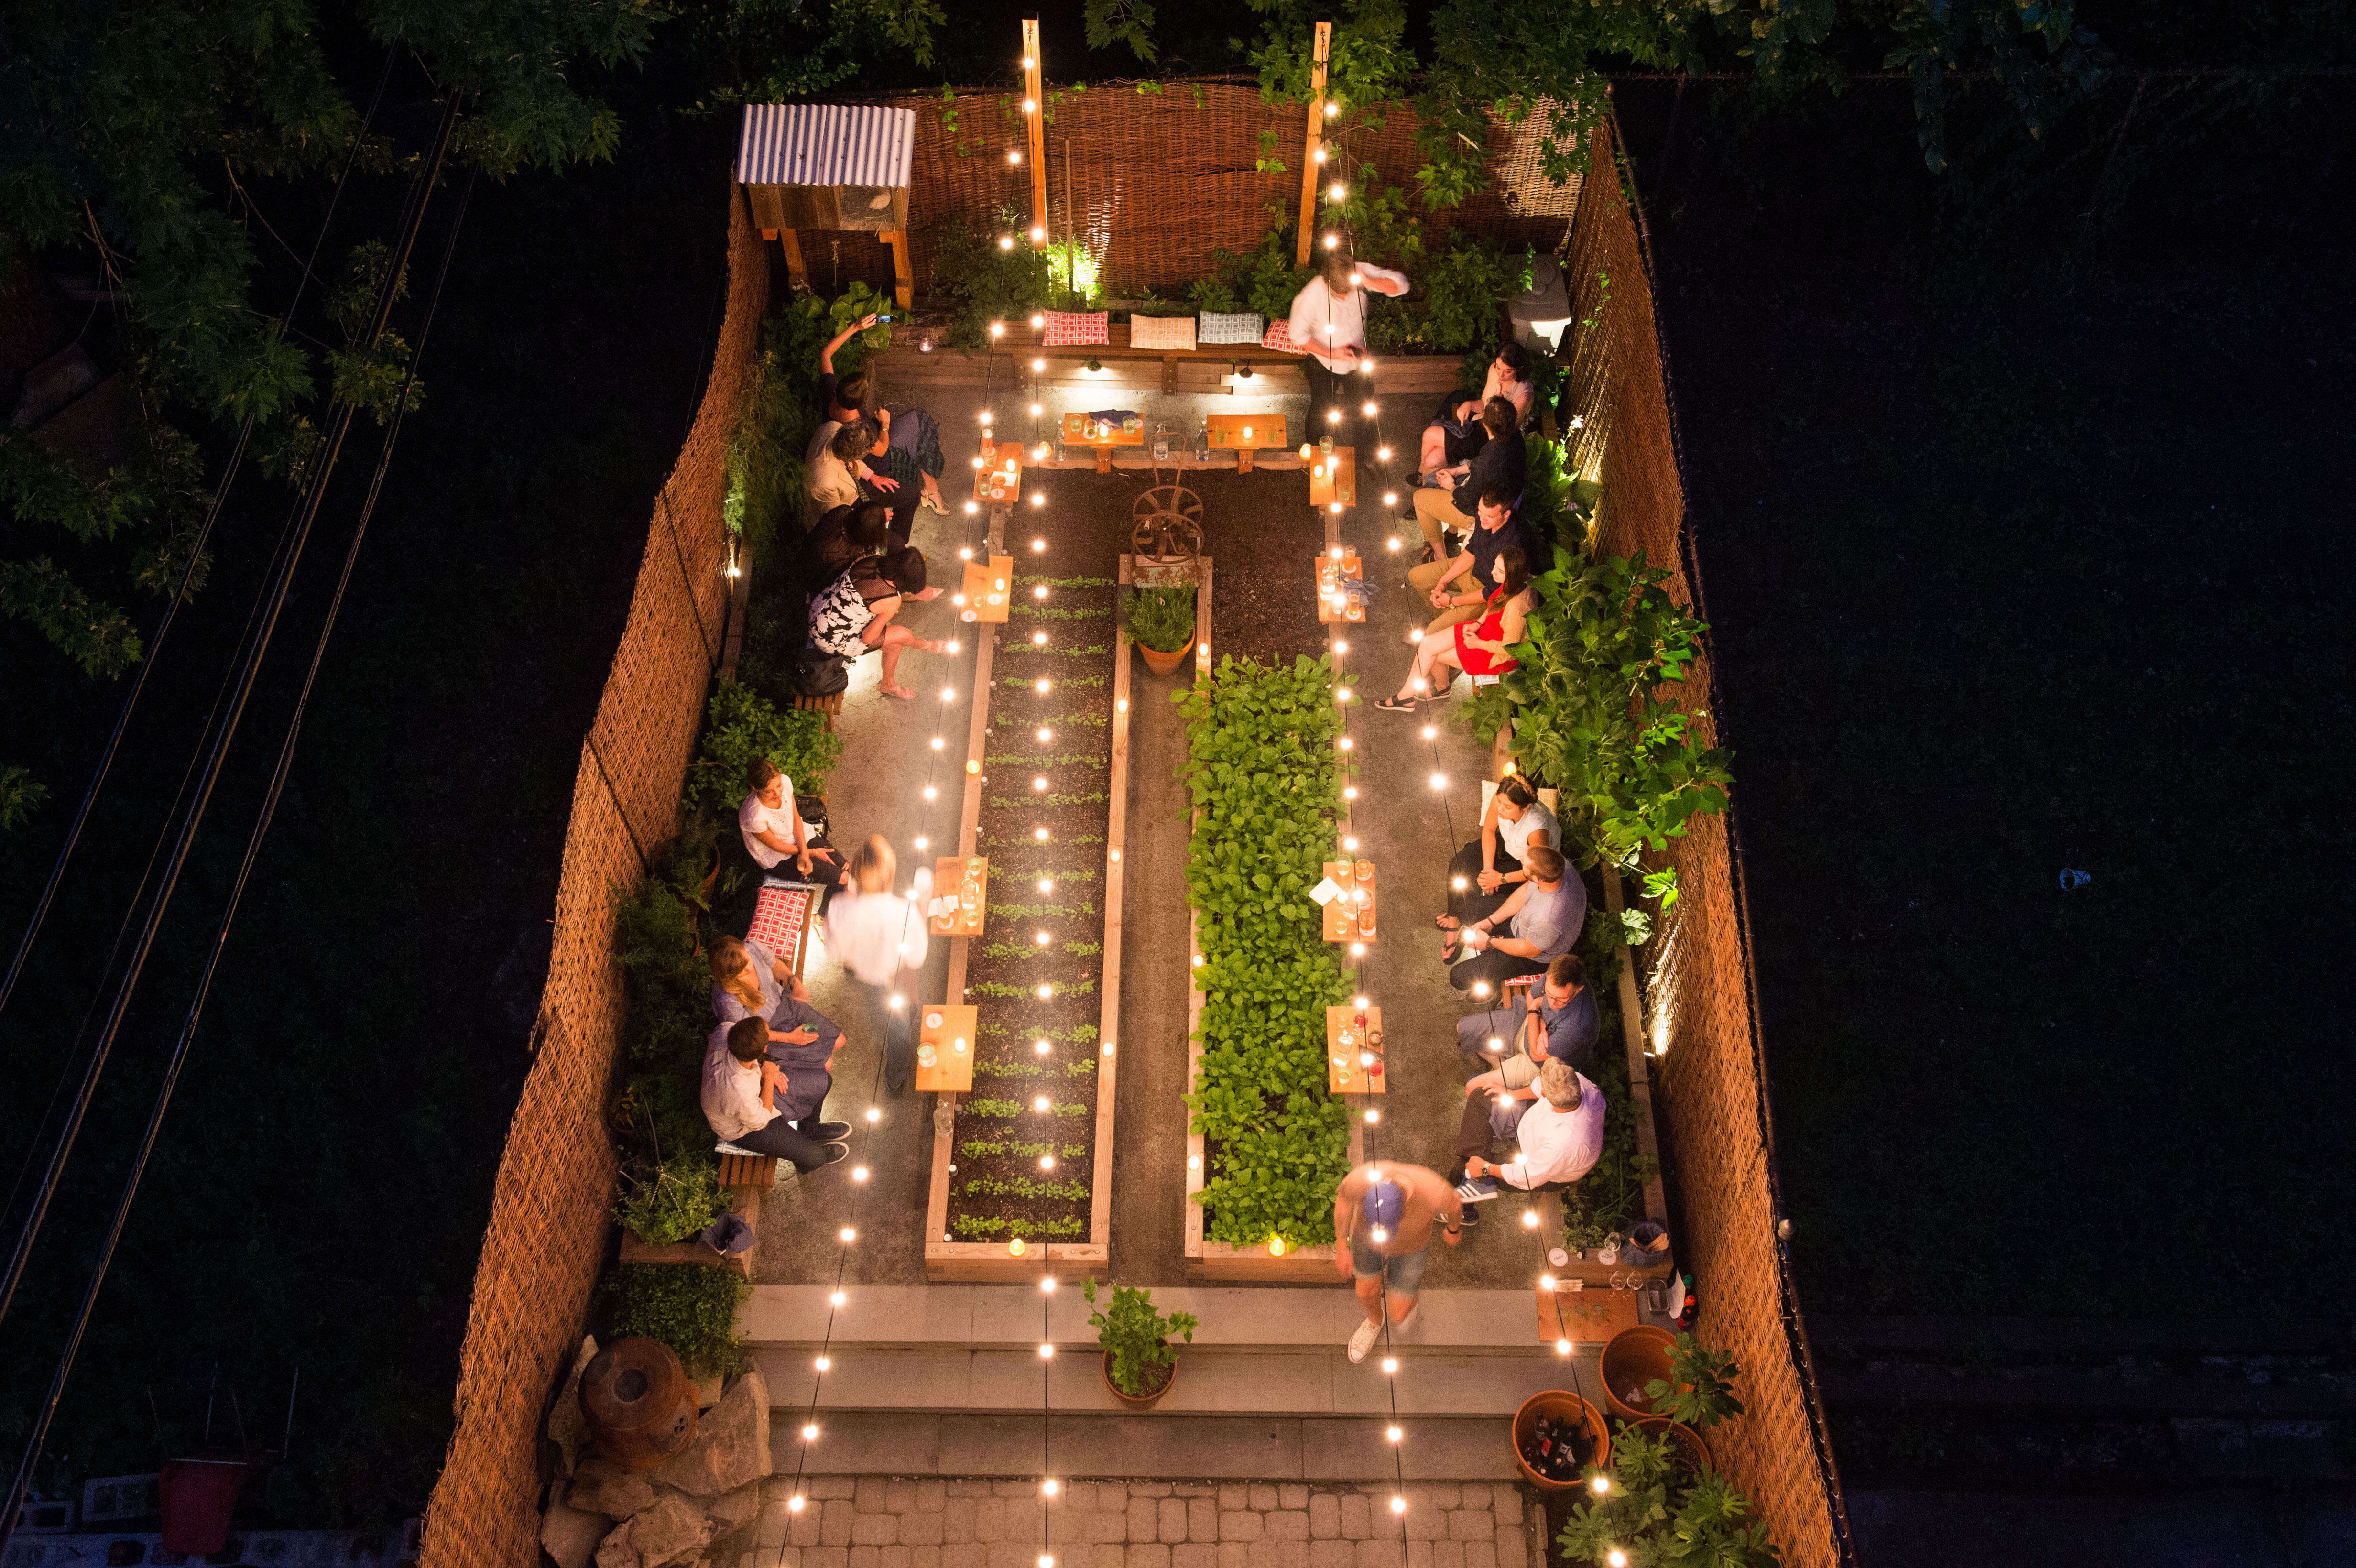 Olmsted Night Overhead of Garden by Evan Sung